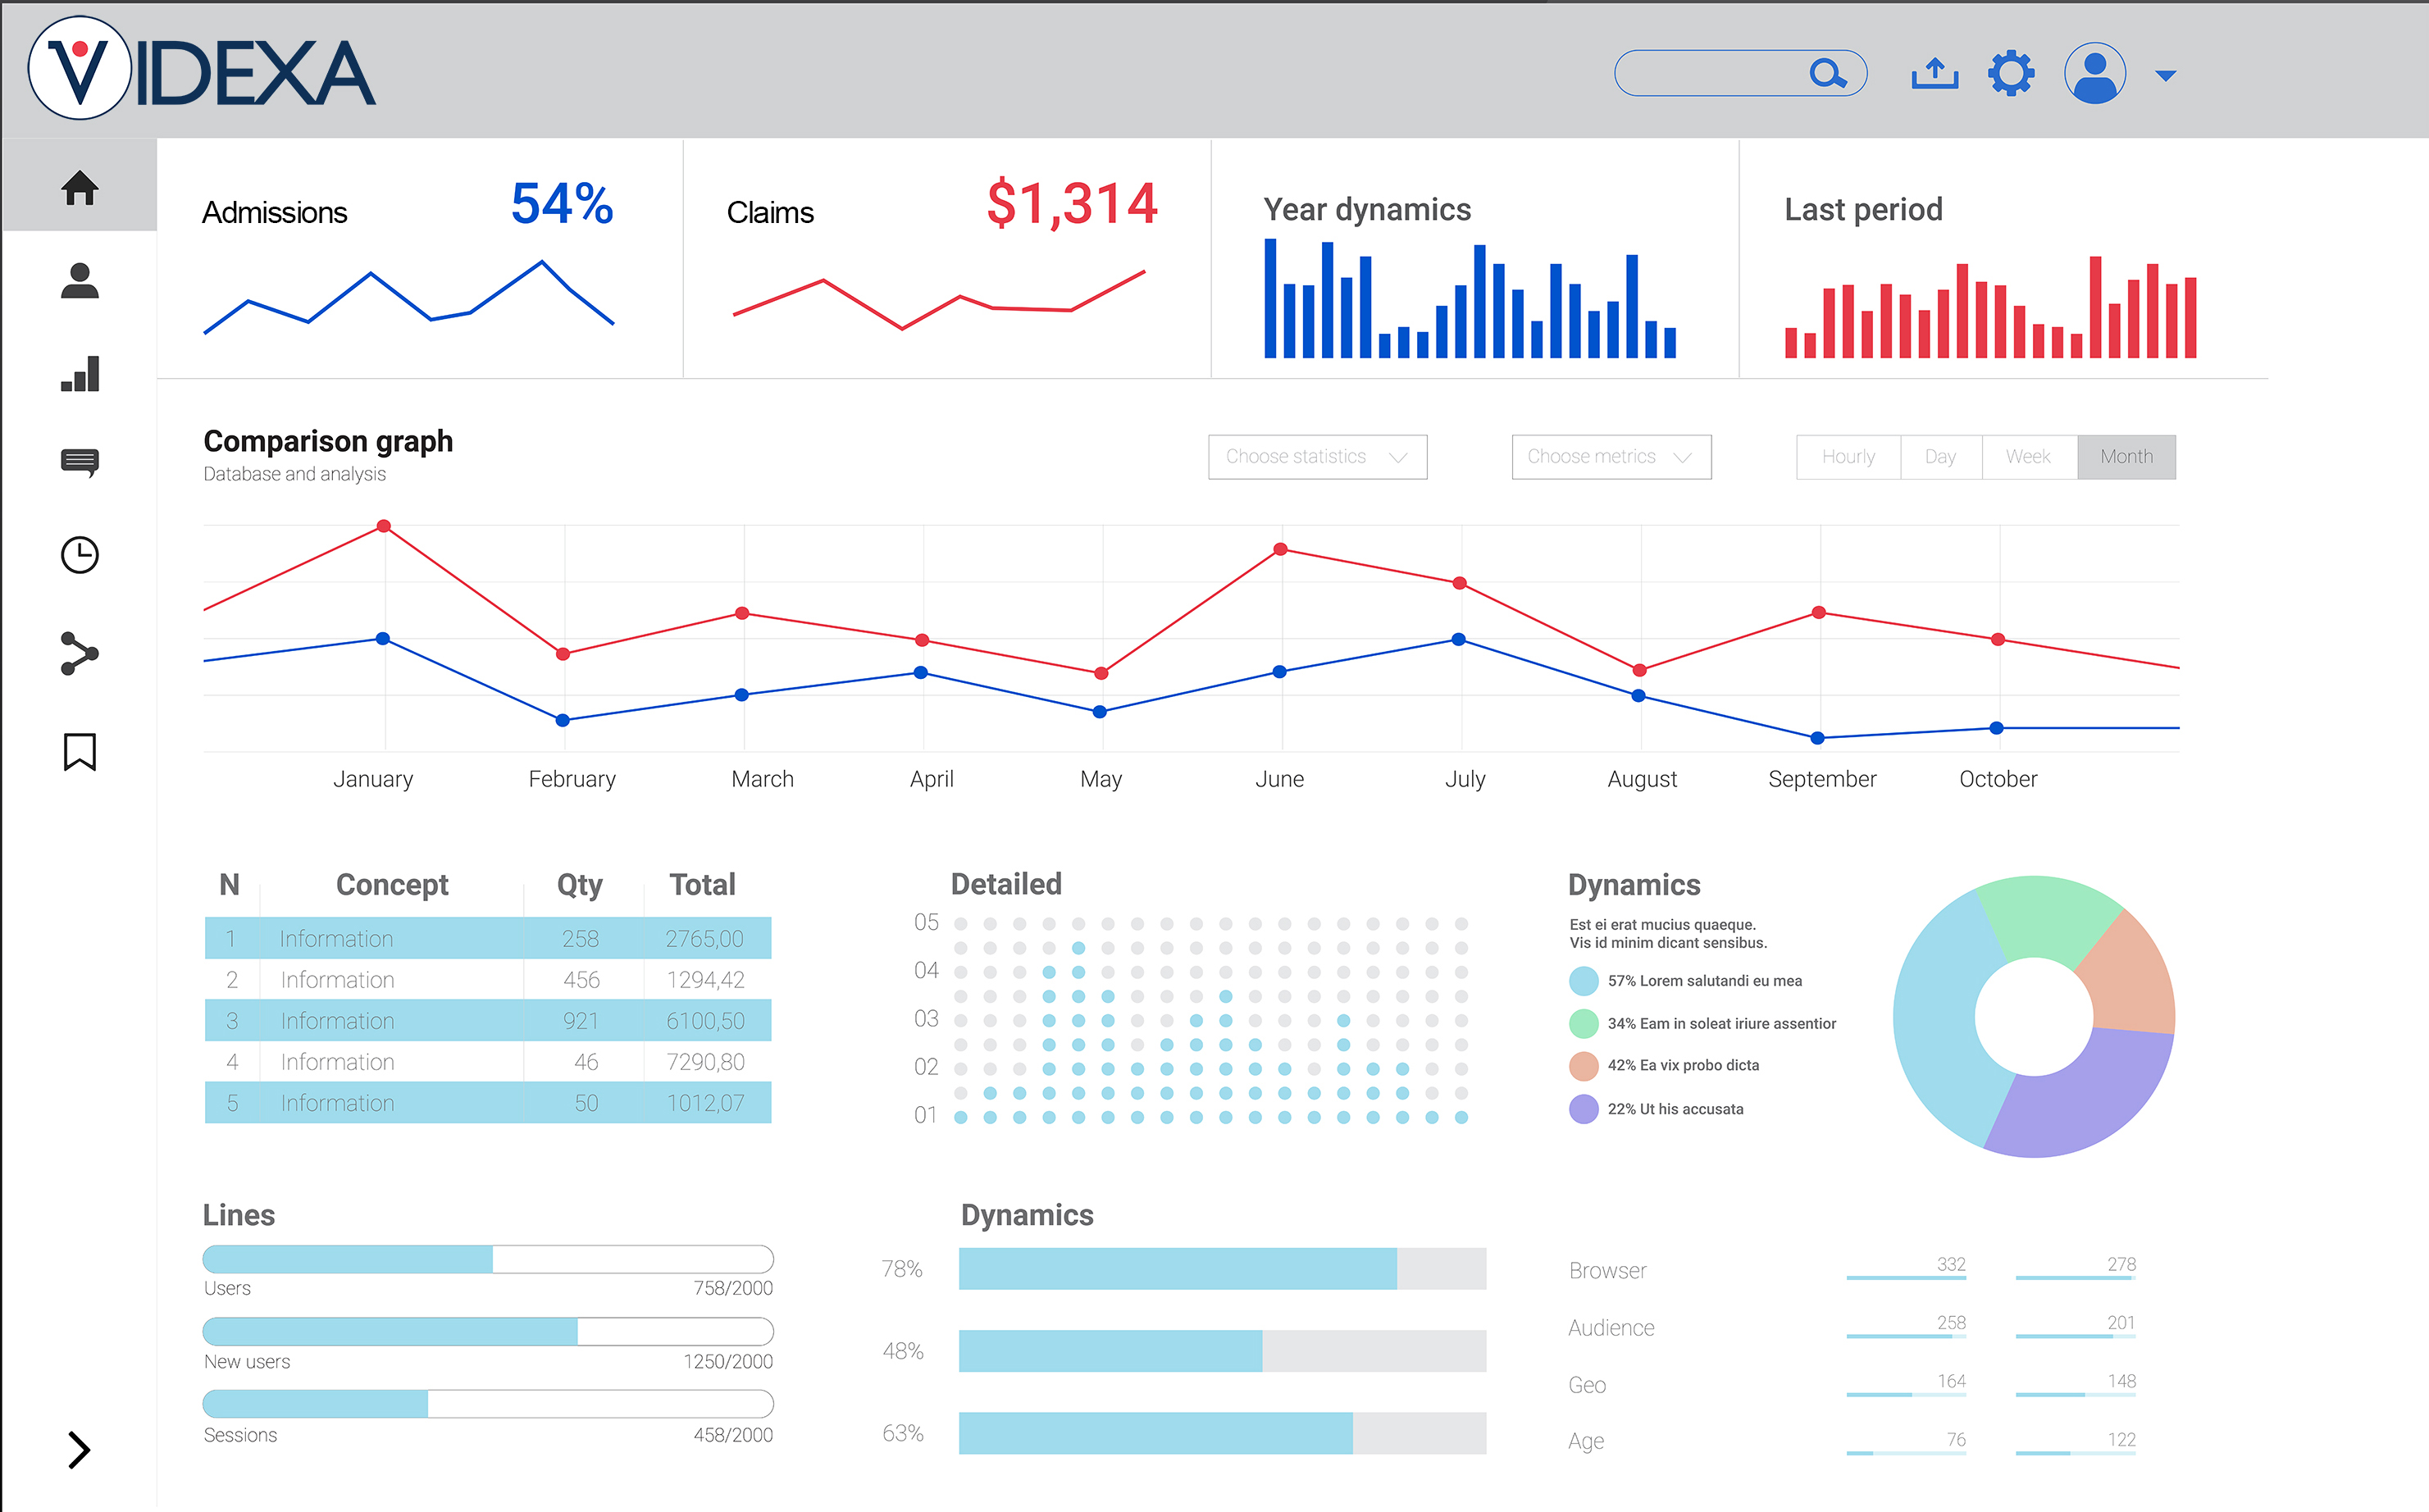 VIDEXA Healthcare Dashboards are your solution for managing your health data at scale.